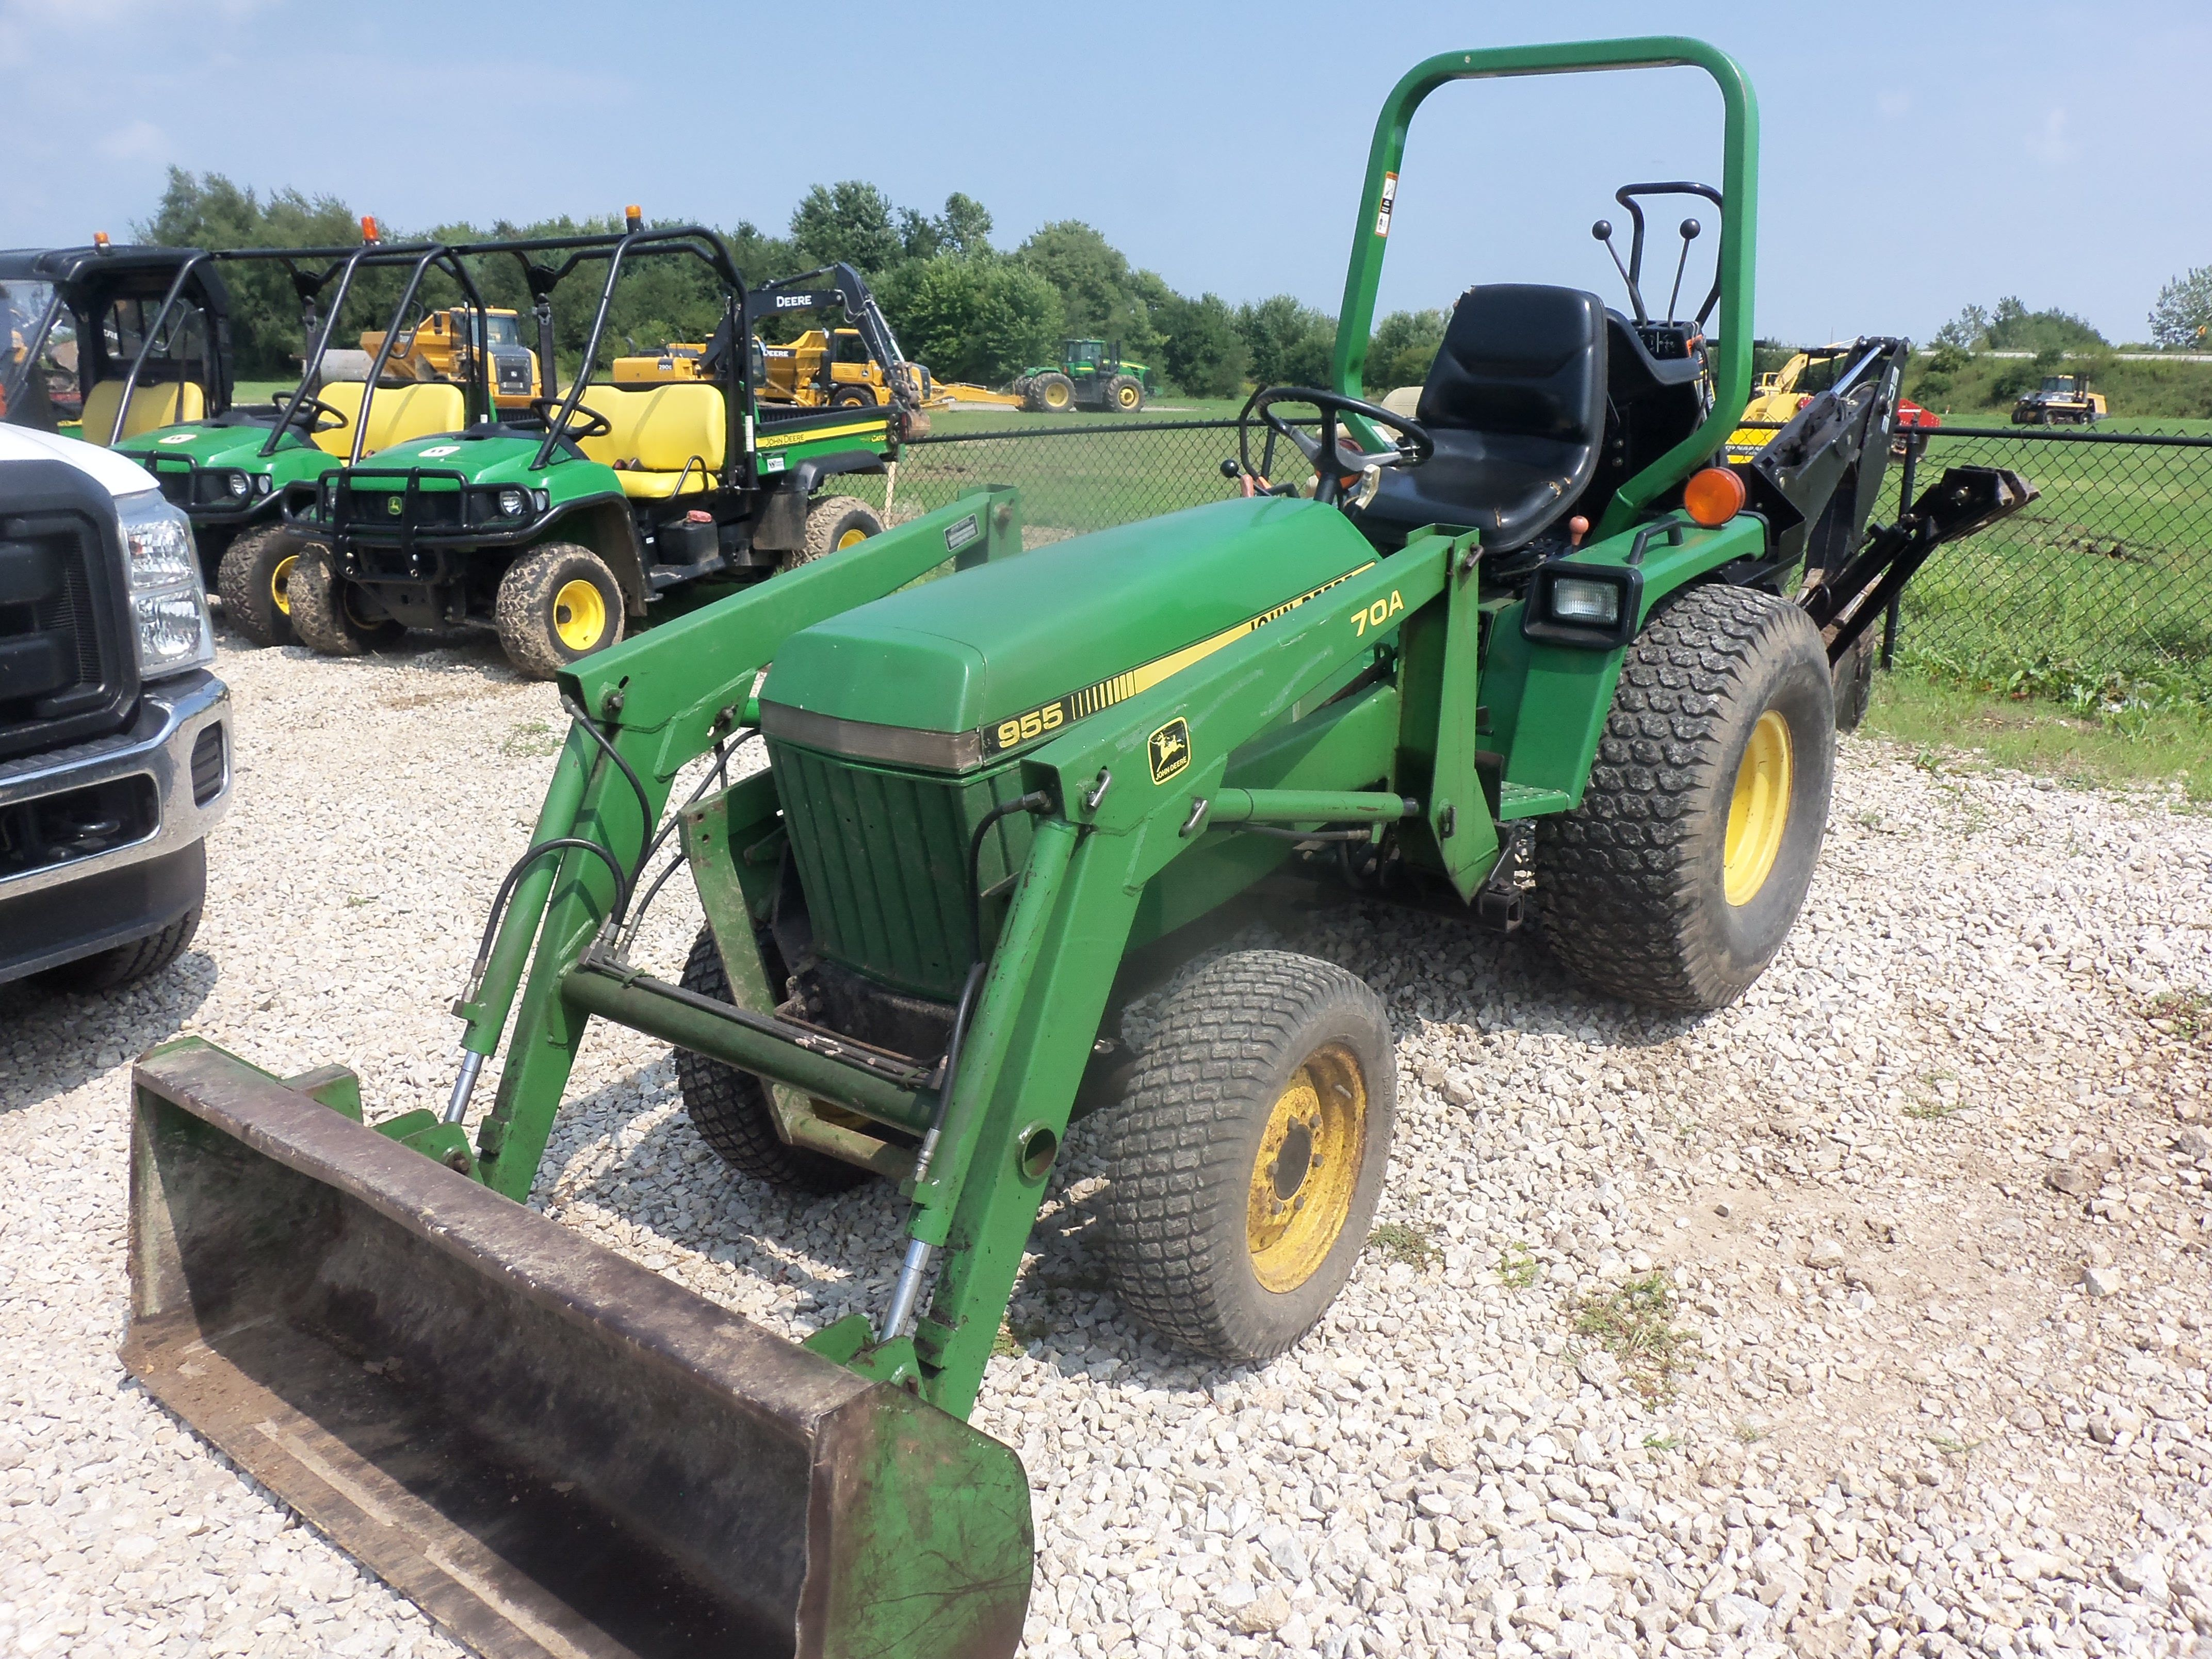 hight resolution of john deere 955 with 70a loader